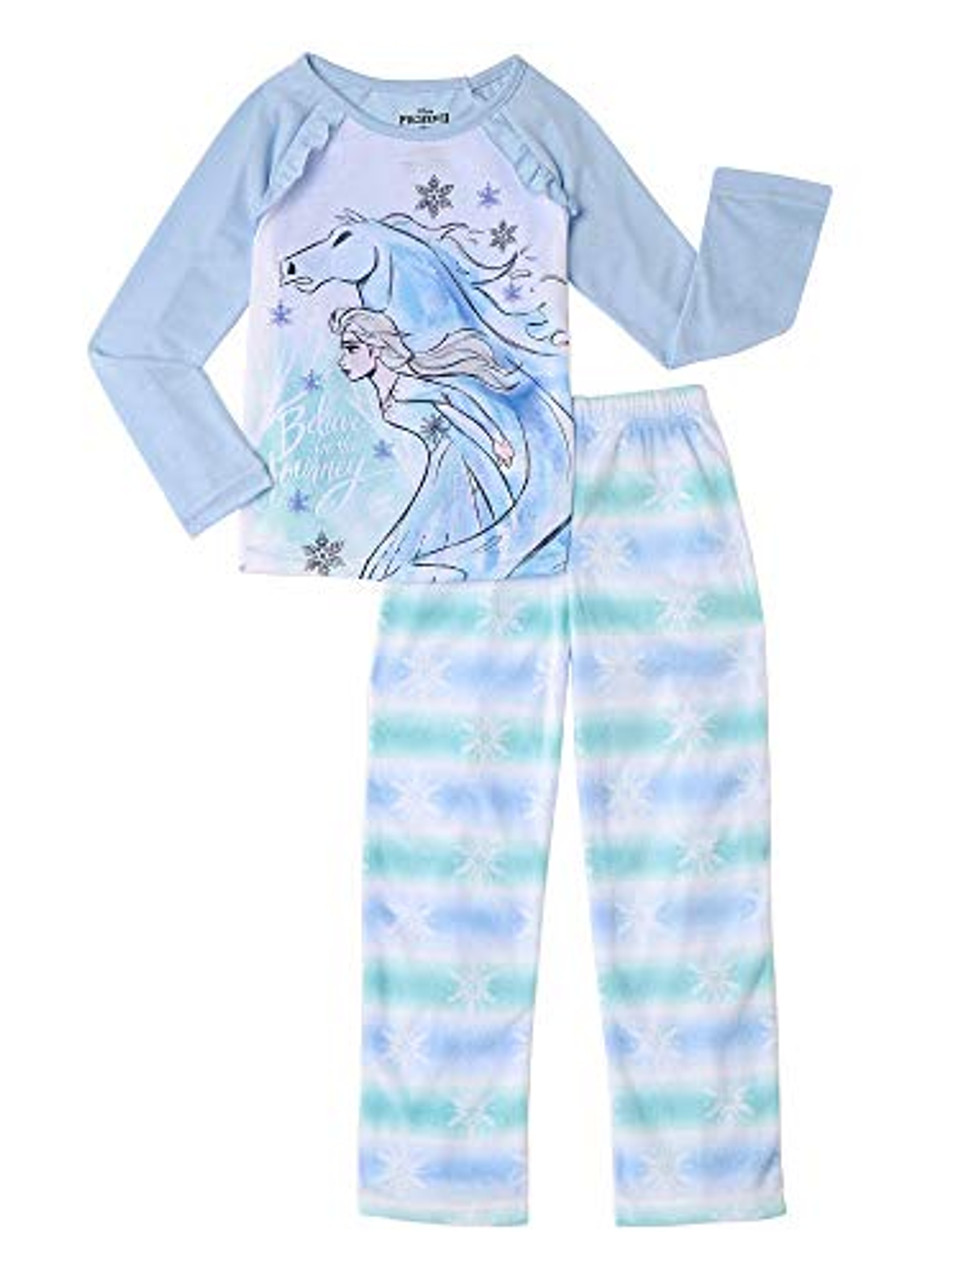 Girls Kids Disney Frozen Anna Elsa Pyjamas Nightwear 2 pcs Set